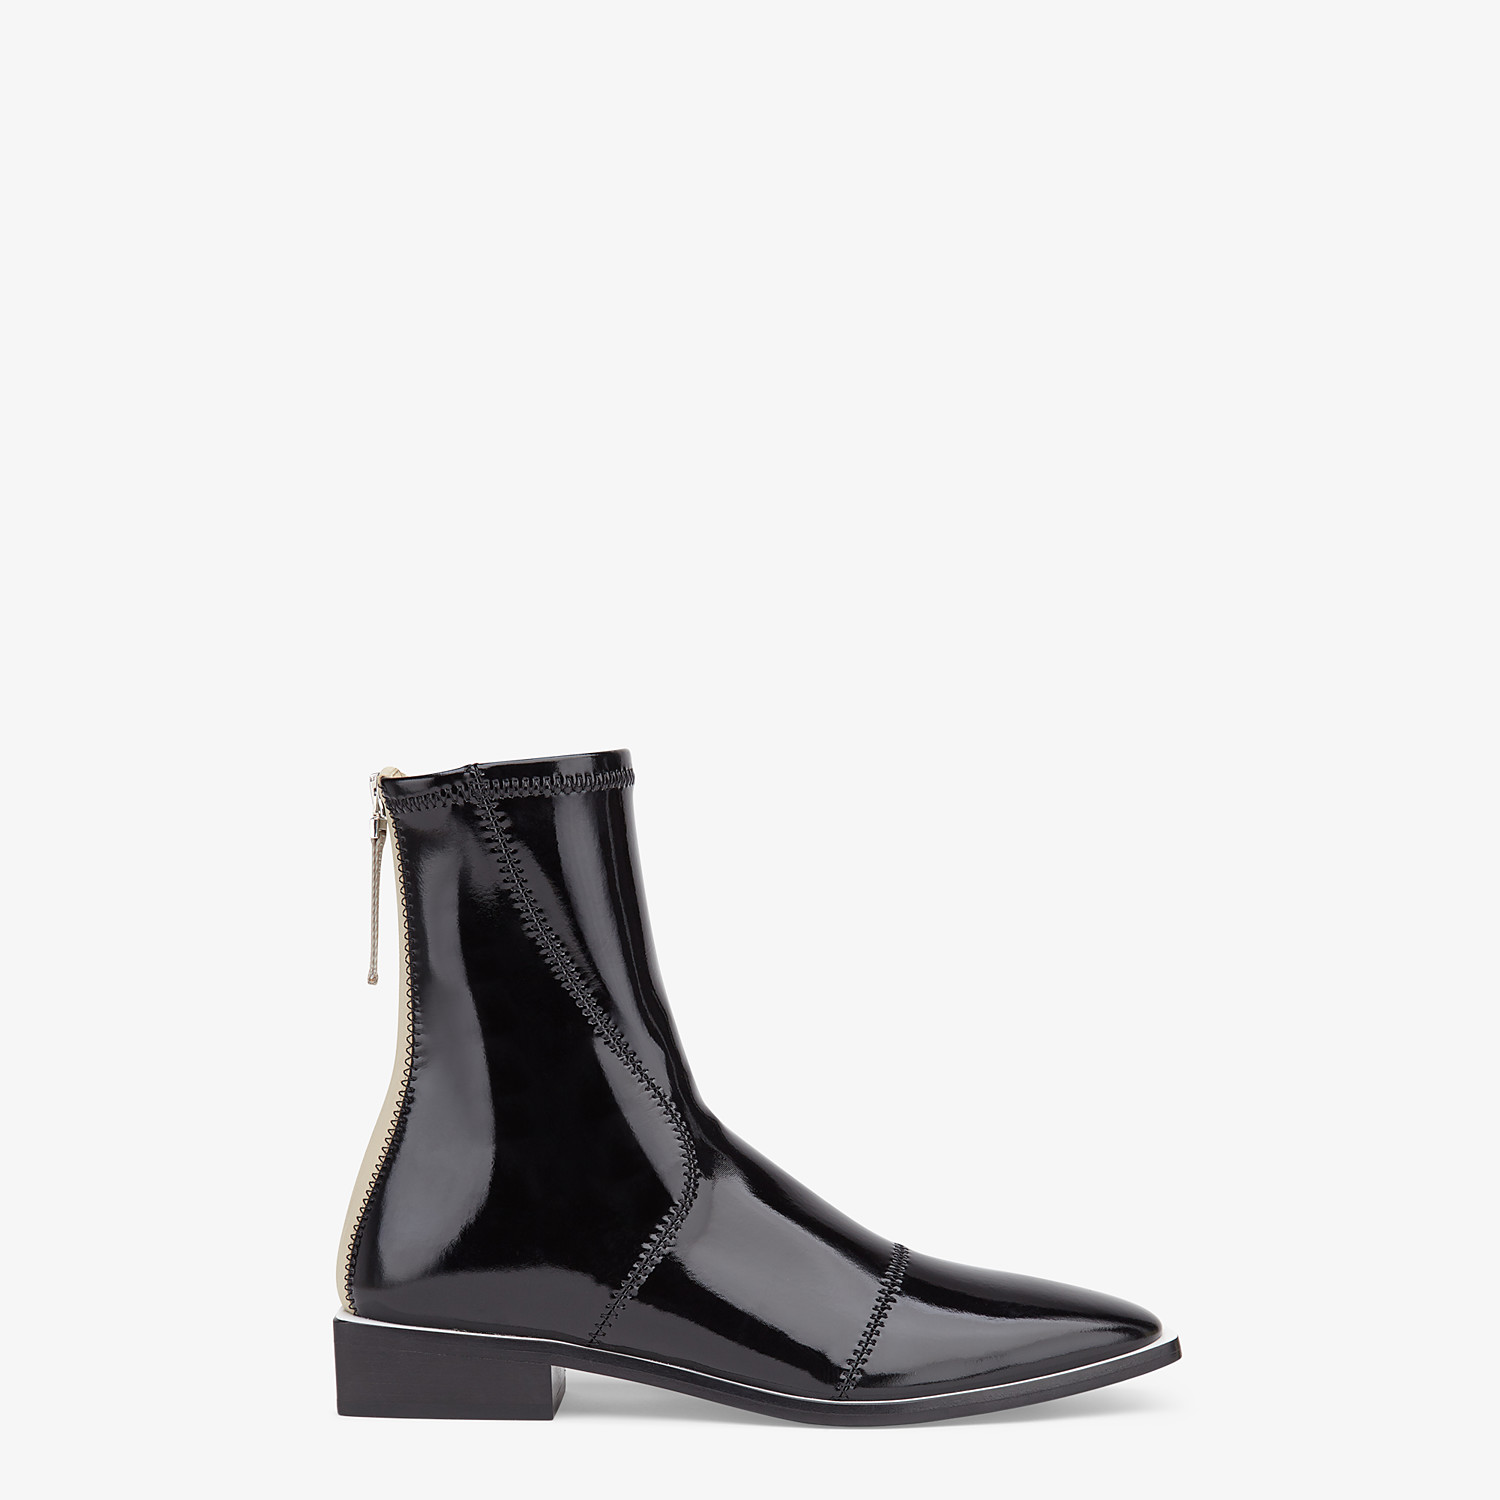 FENDI FFRAME - Glossy black neoprene low ankle boots - view 1 detail